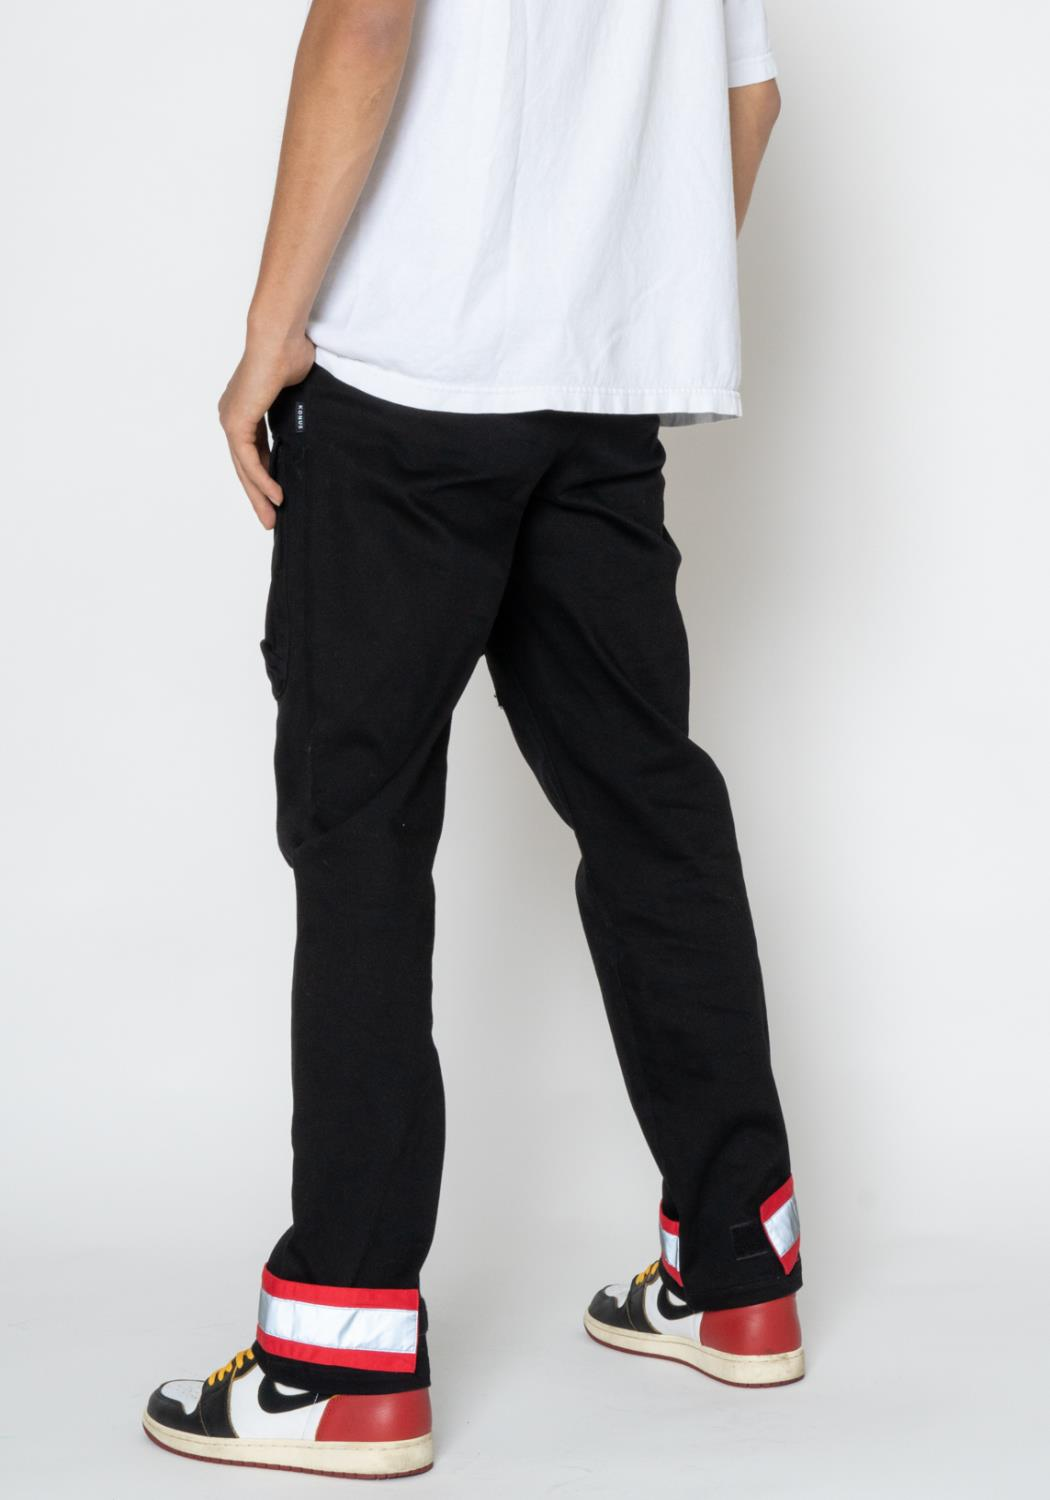 Konus Twill Cargo Pants with Red and Reflective Tape